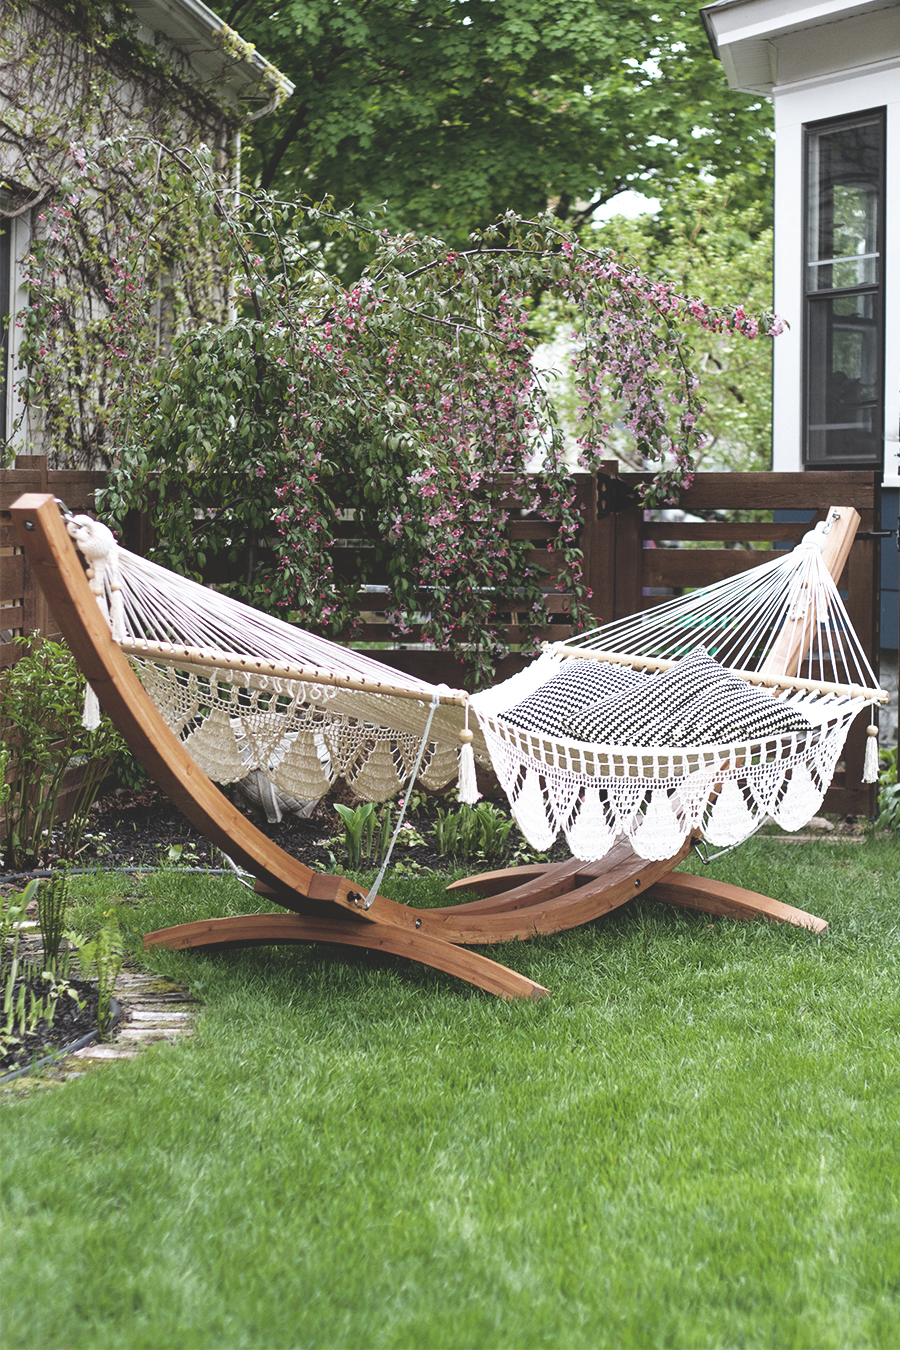 included gb en chairs garden g benches to products easy fred up hang stand beige stools spr n with hammock loungers ikea grey hooks the r